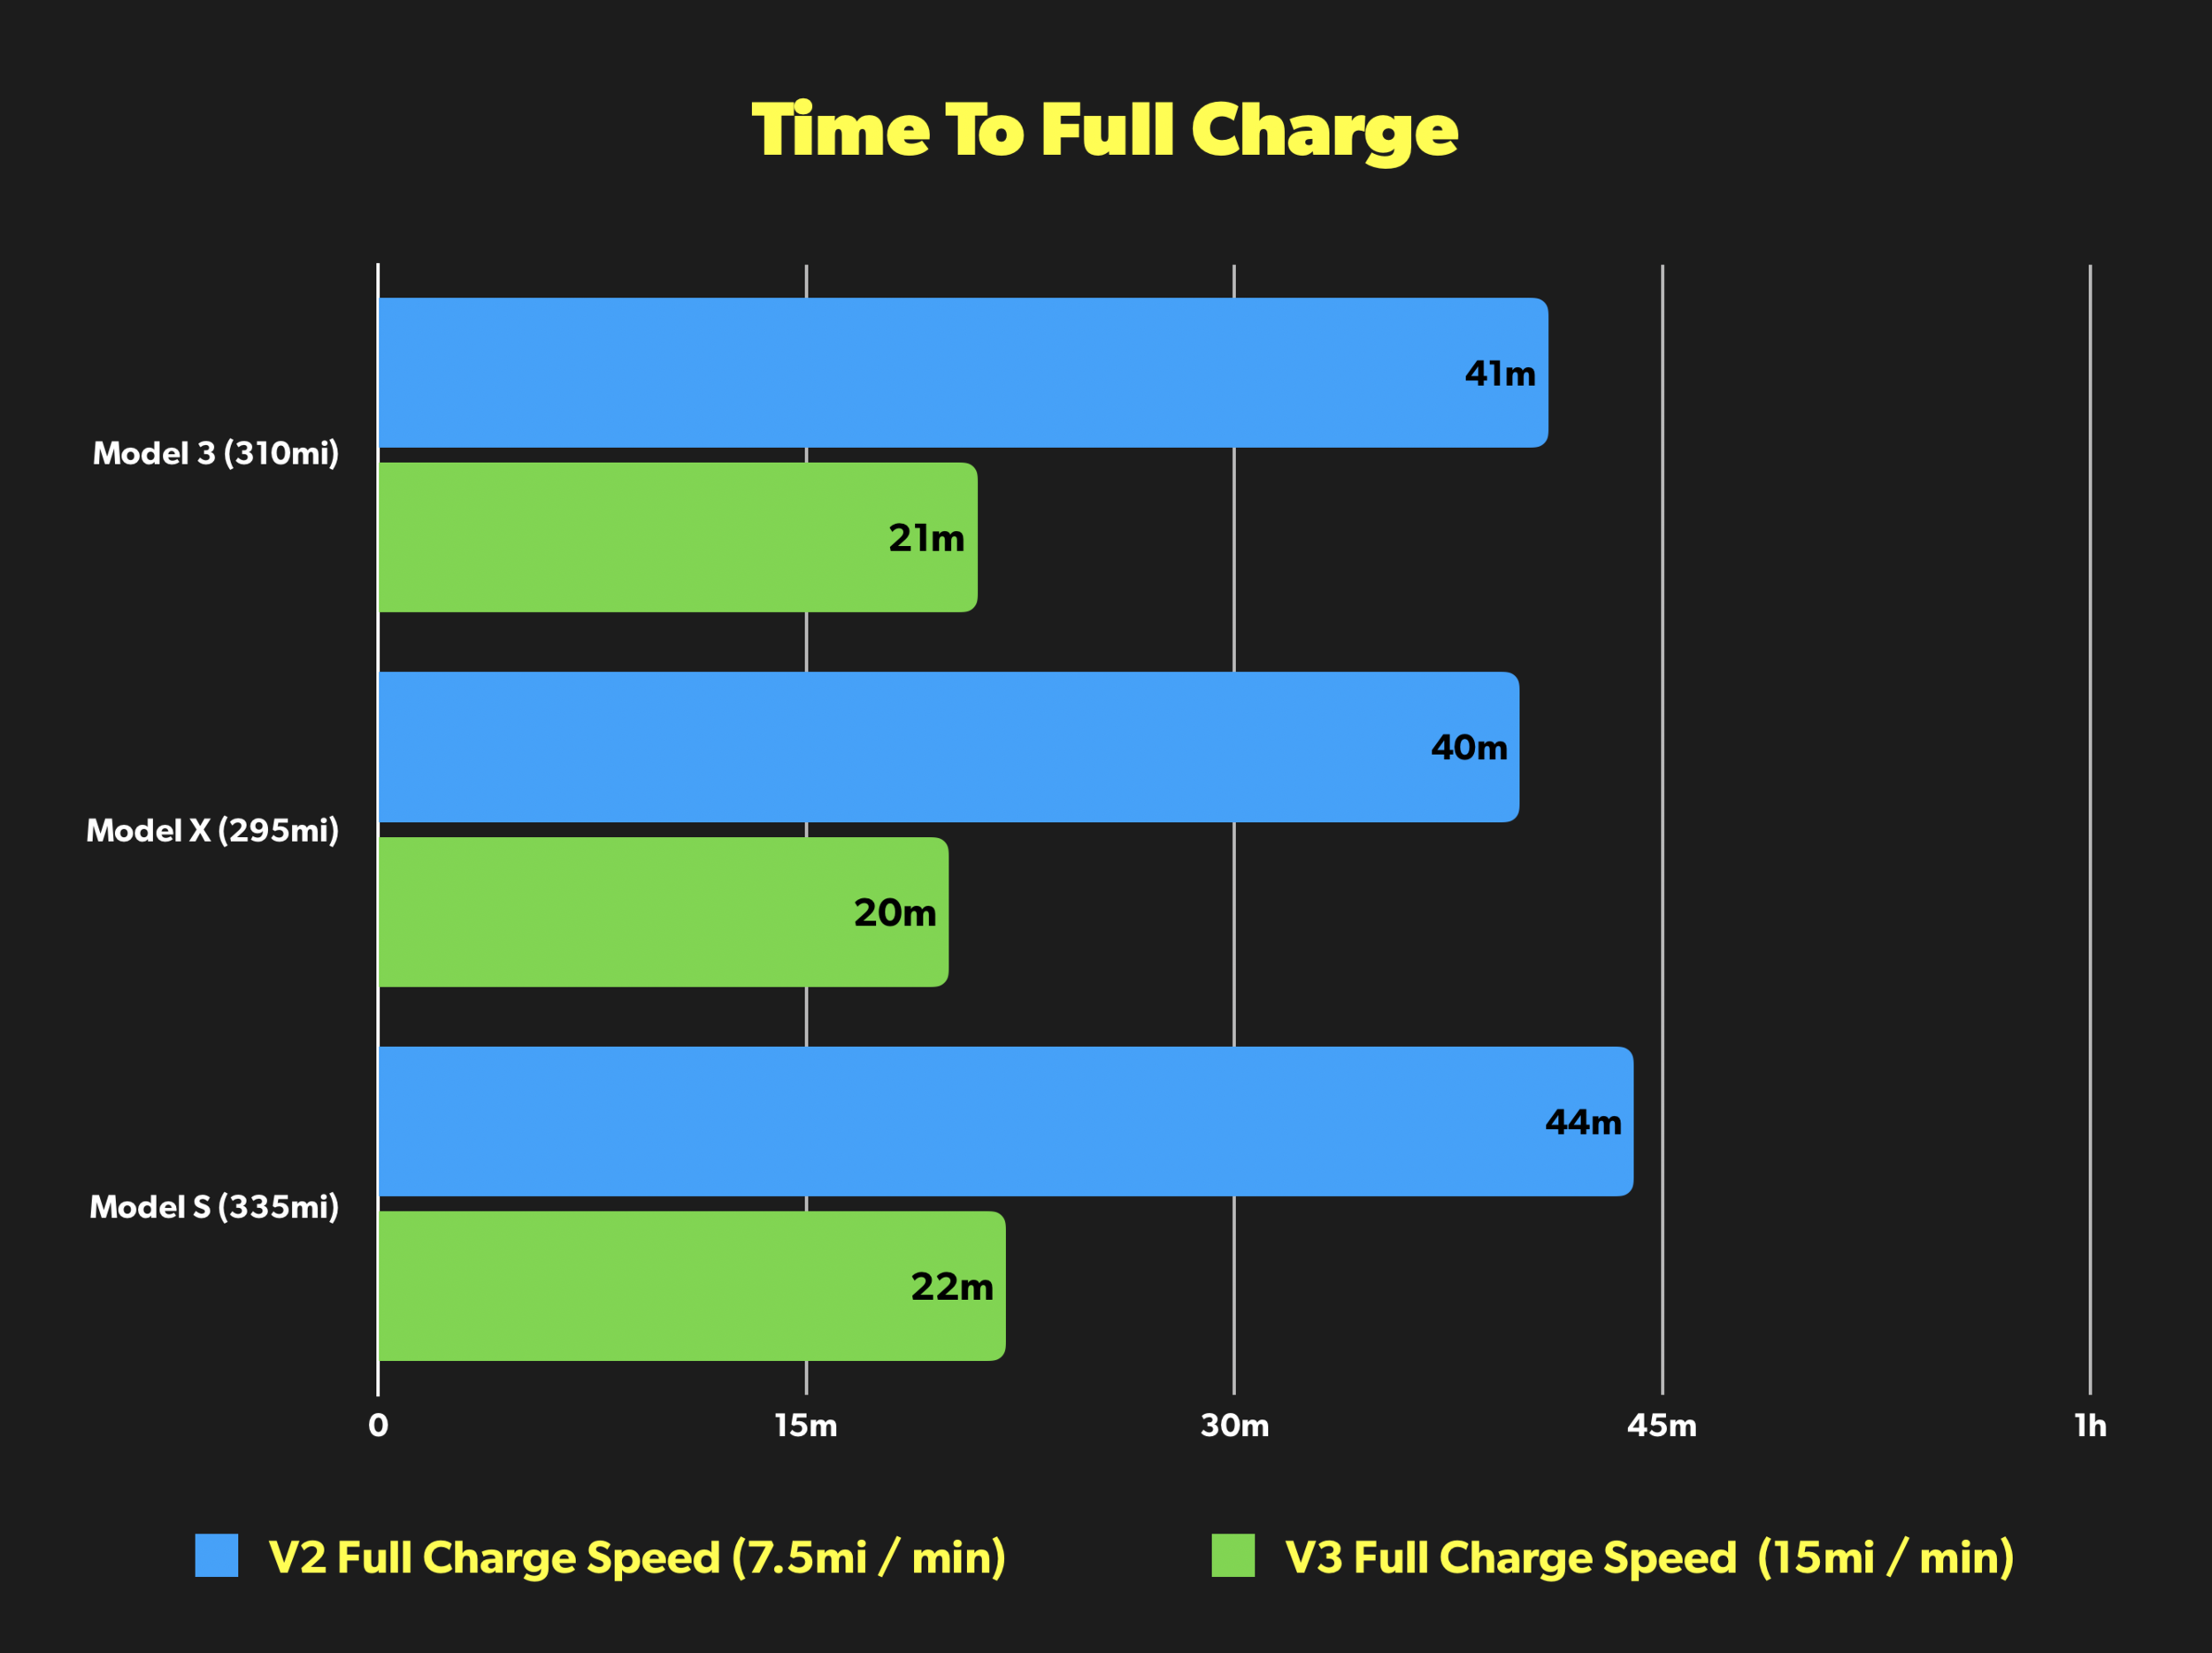 Tesla vehicle charing speeds with V2 and V3 Superchargers